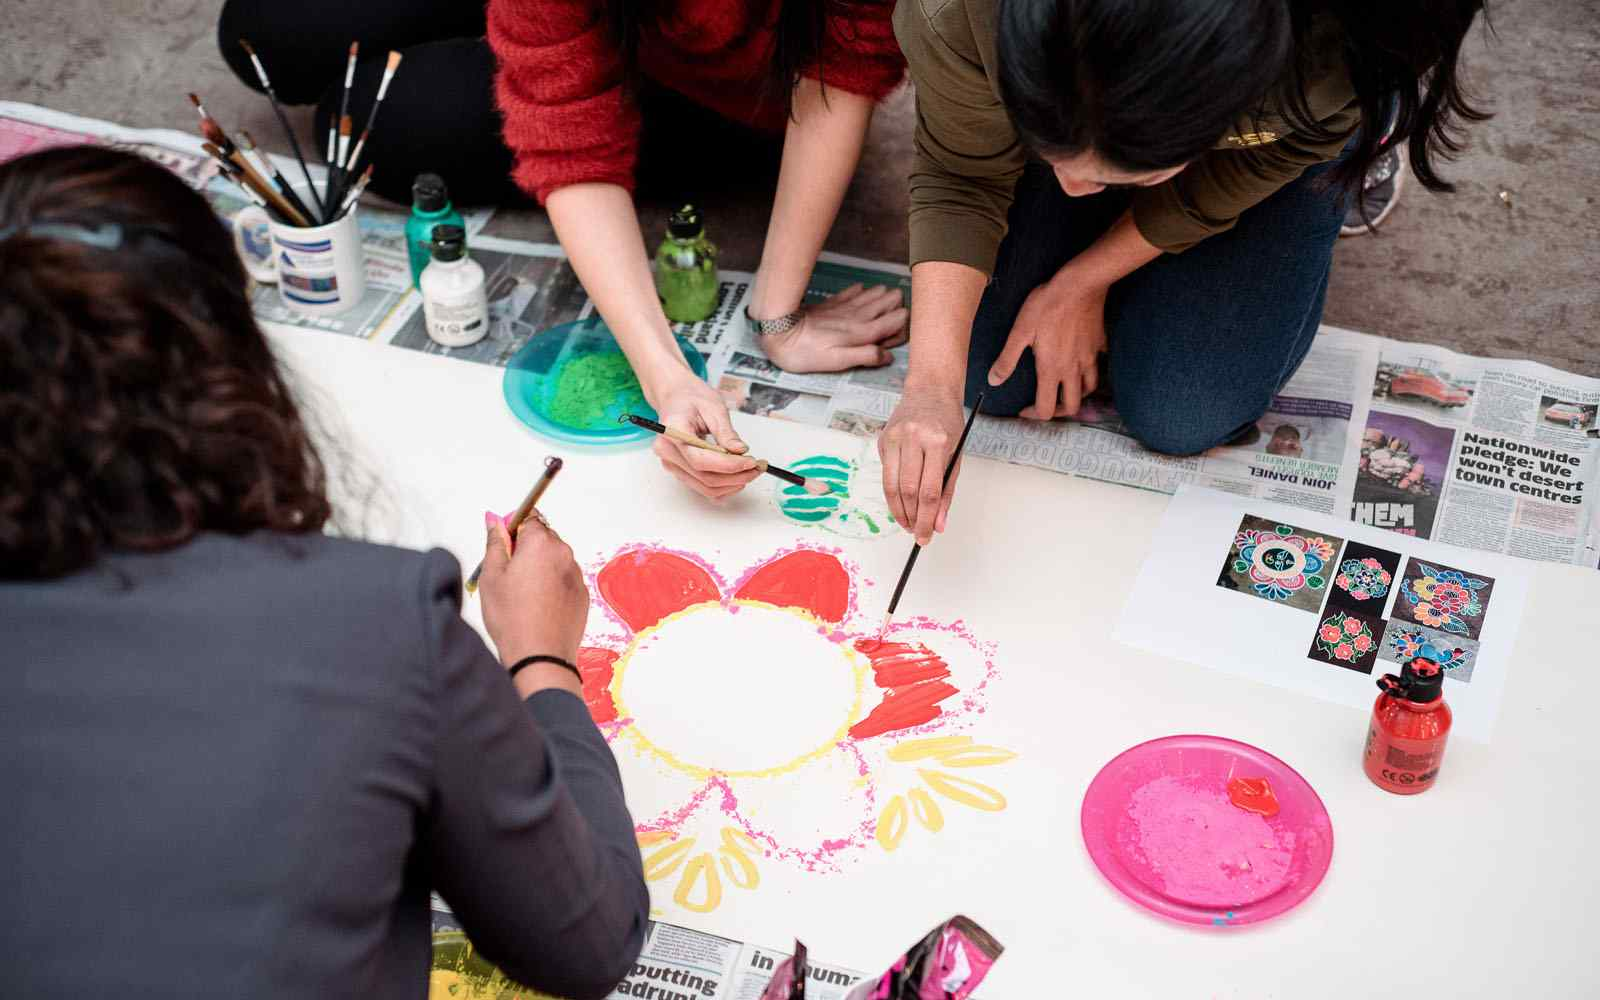 Students working together to paint flower